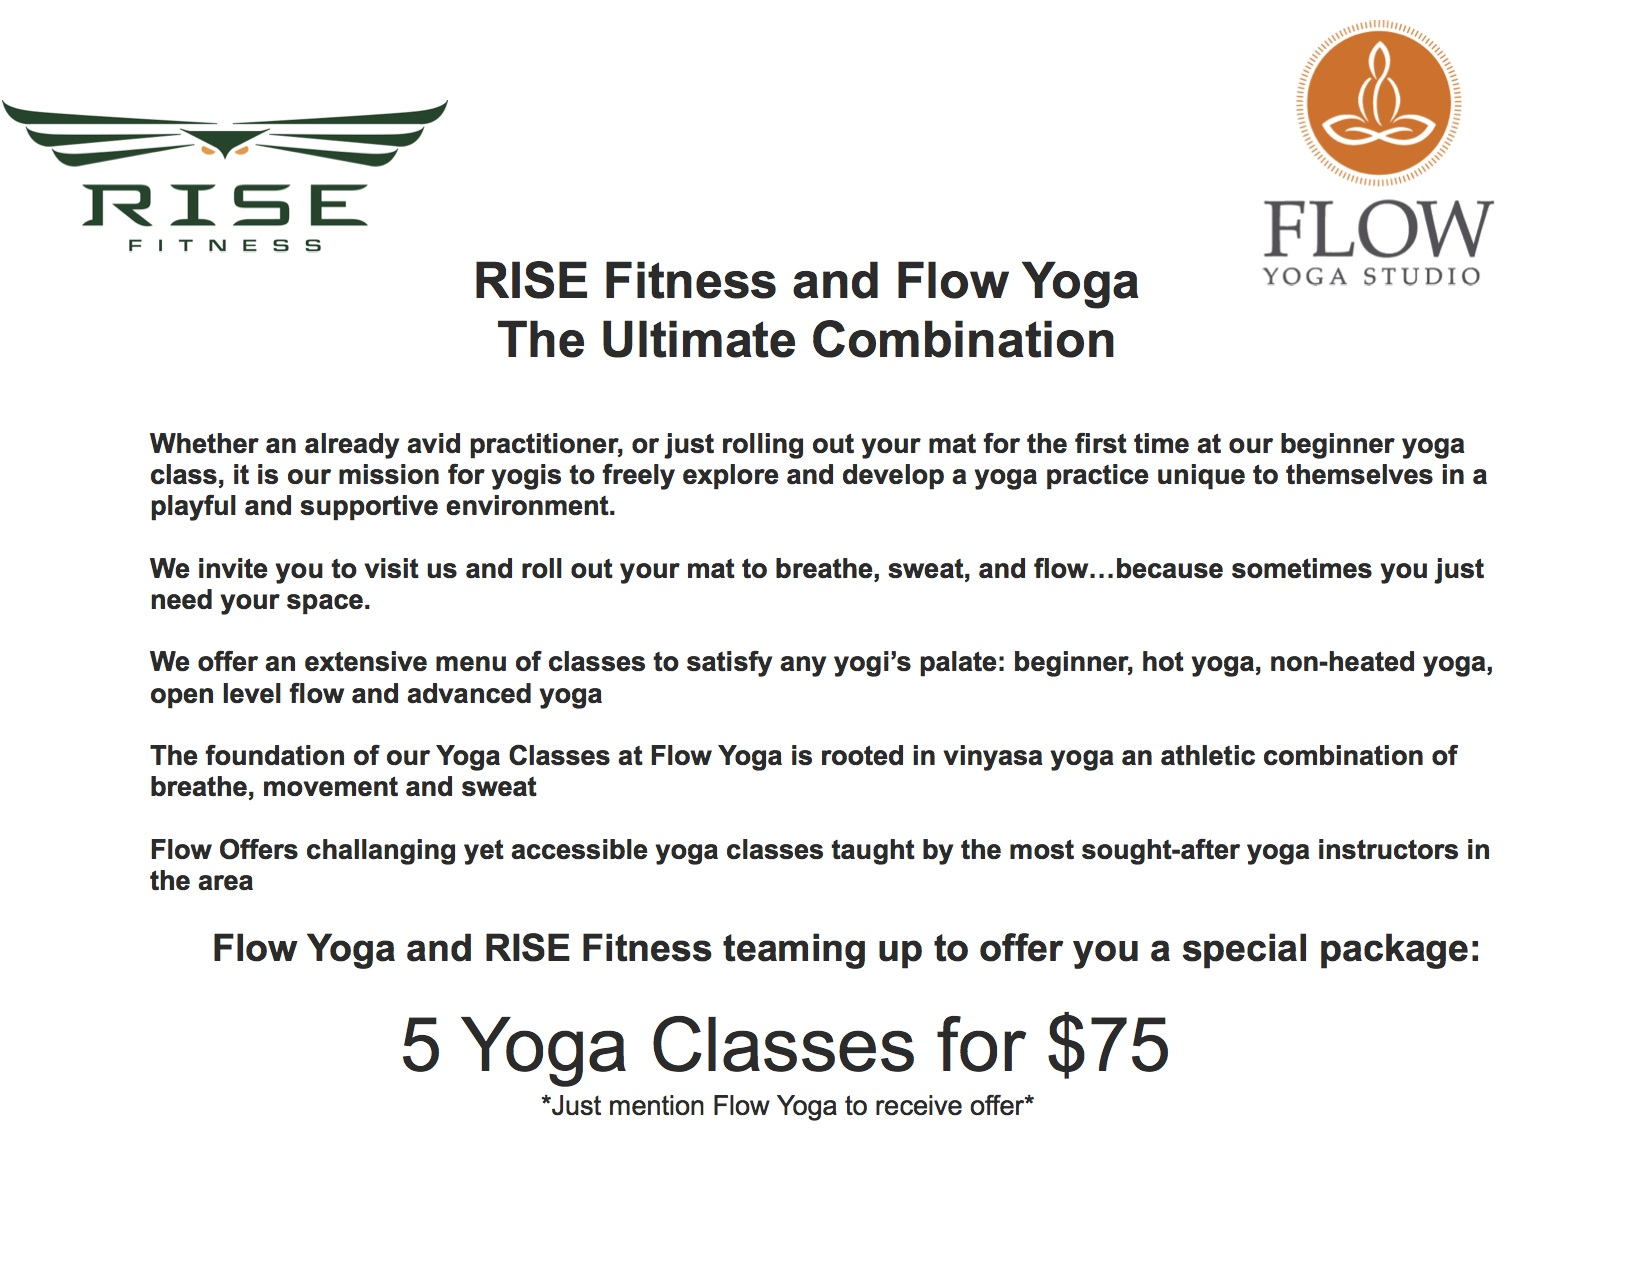 Rise and Flow Yoga are Teaming Up!